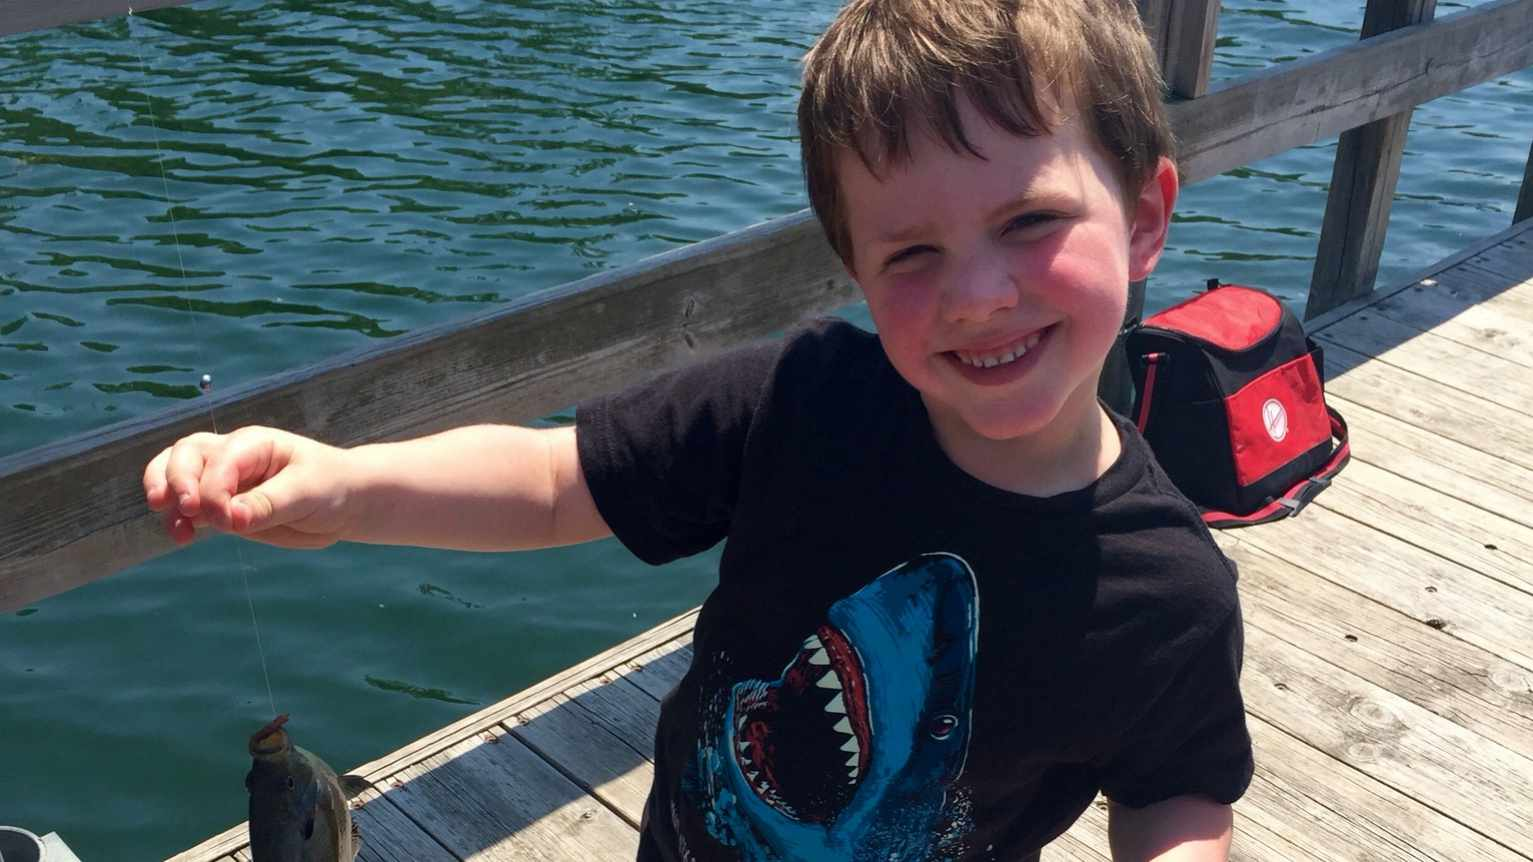 patient Gus on a fishing dock smiling and holding a fish